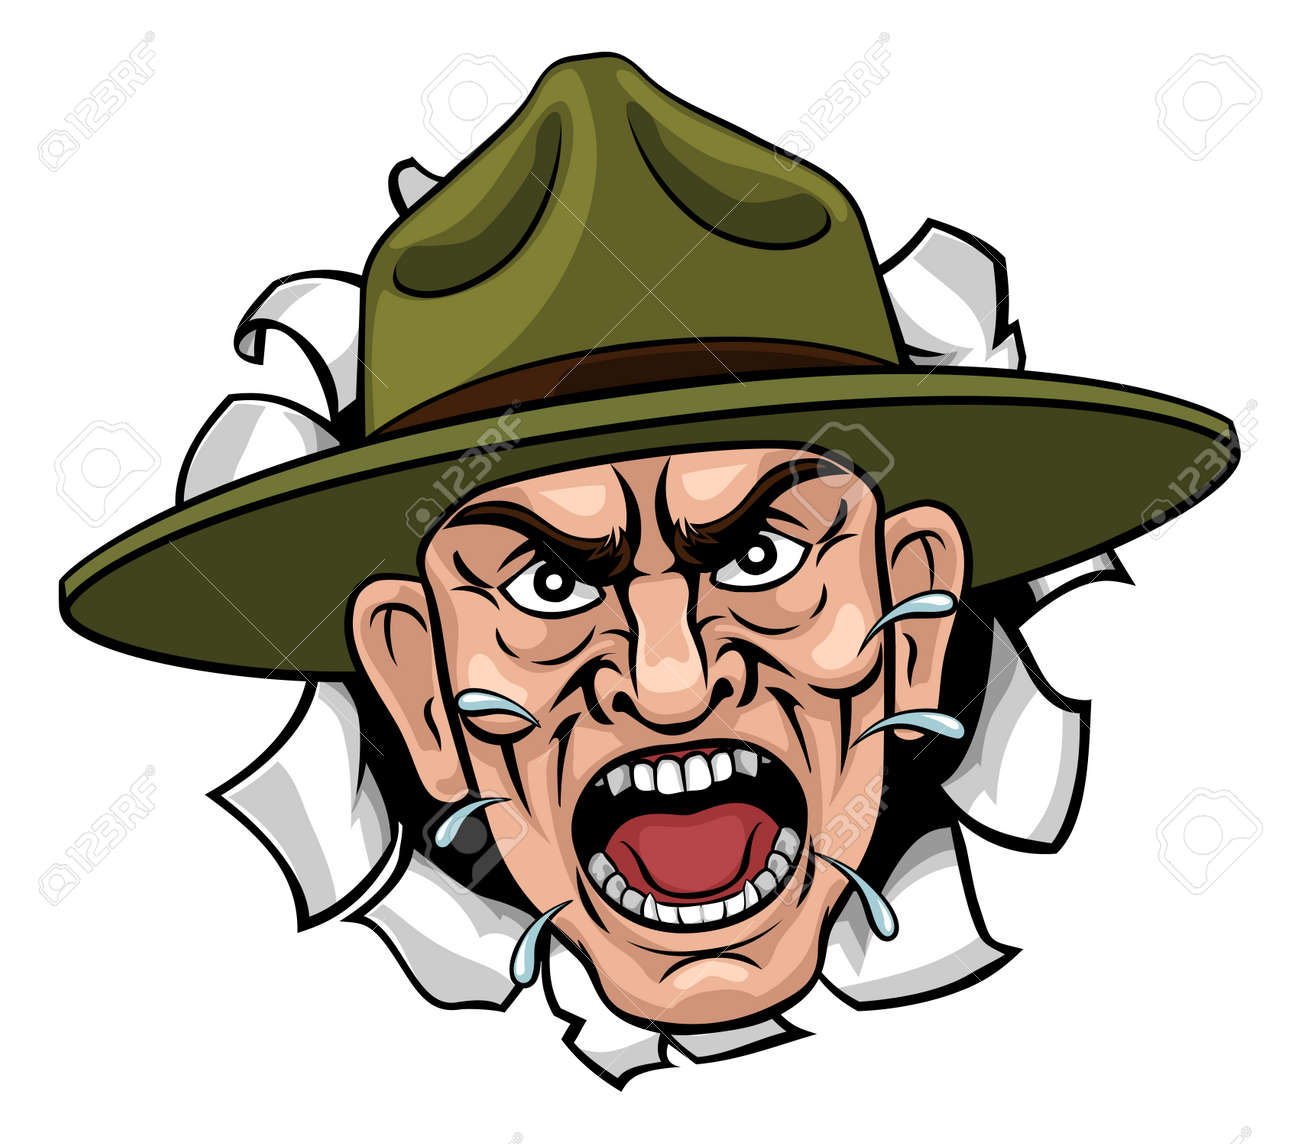 Angry Army Bootcamp Drill Sergeant Cartoon - 143435215